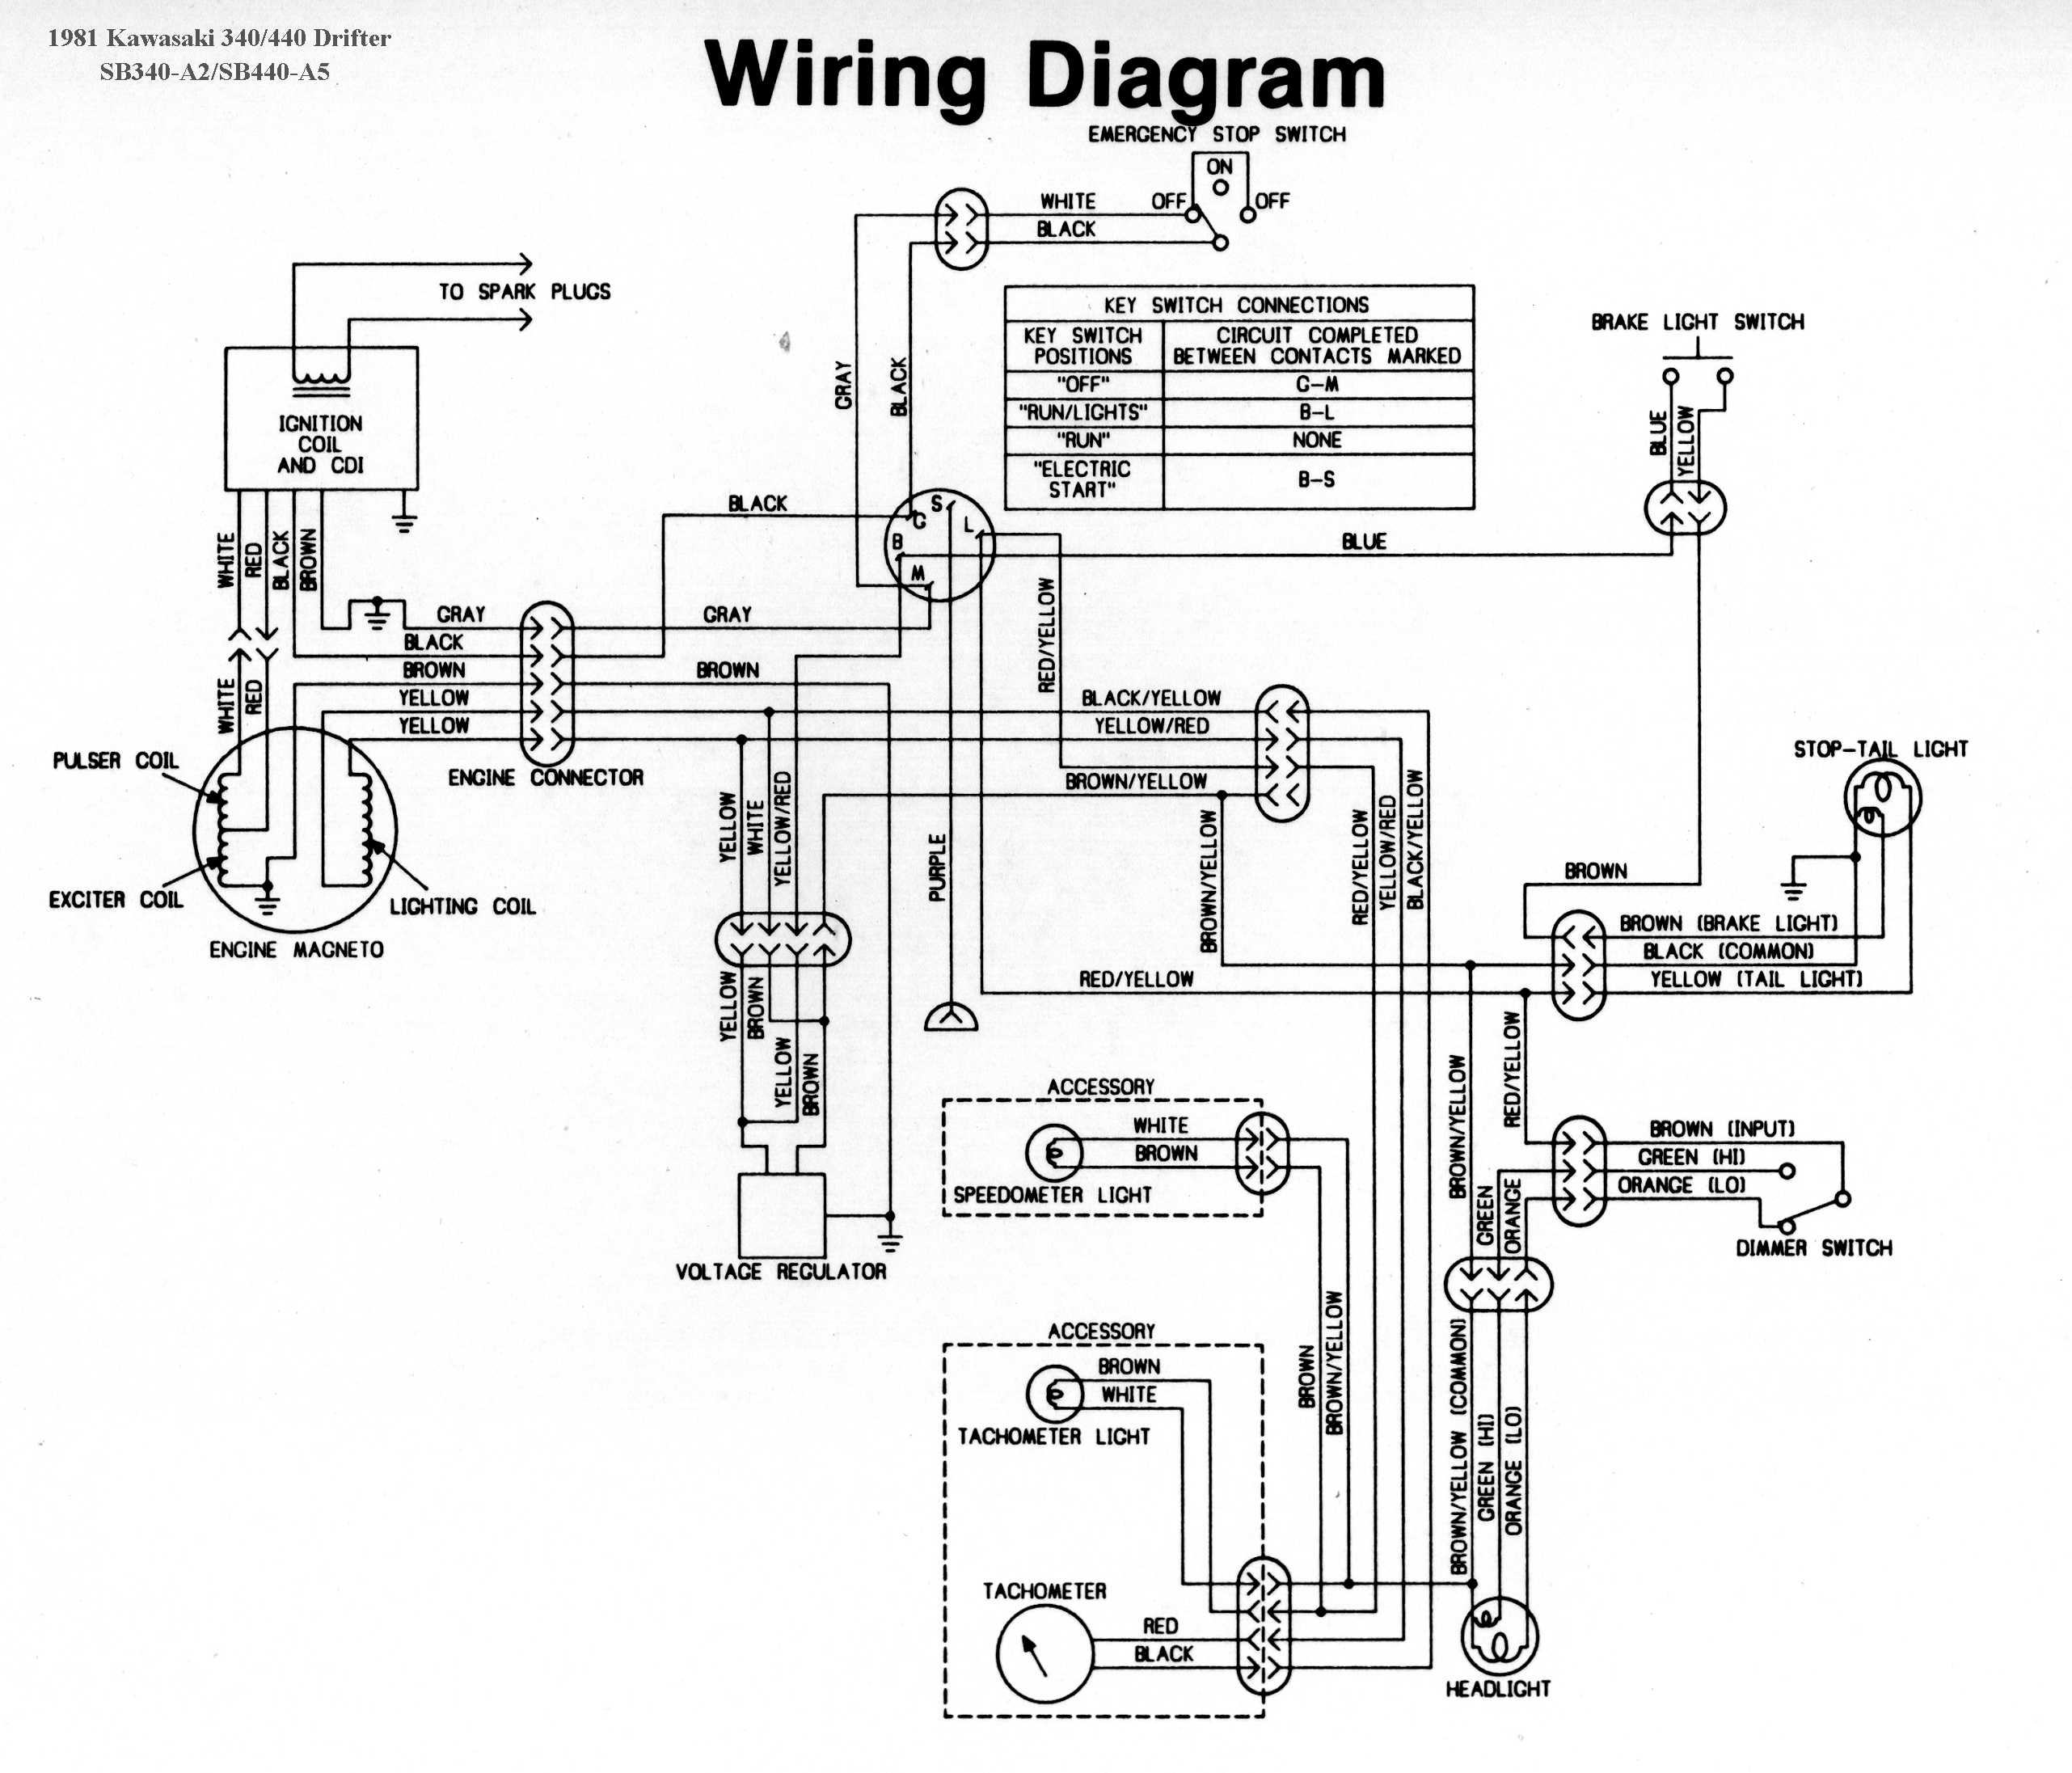 1981 kz440 wiring diagram